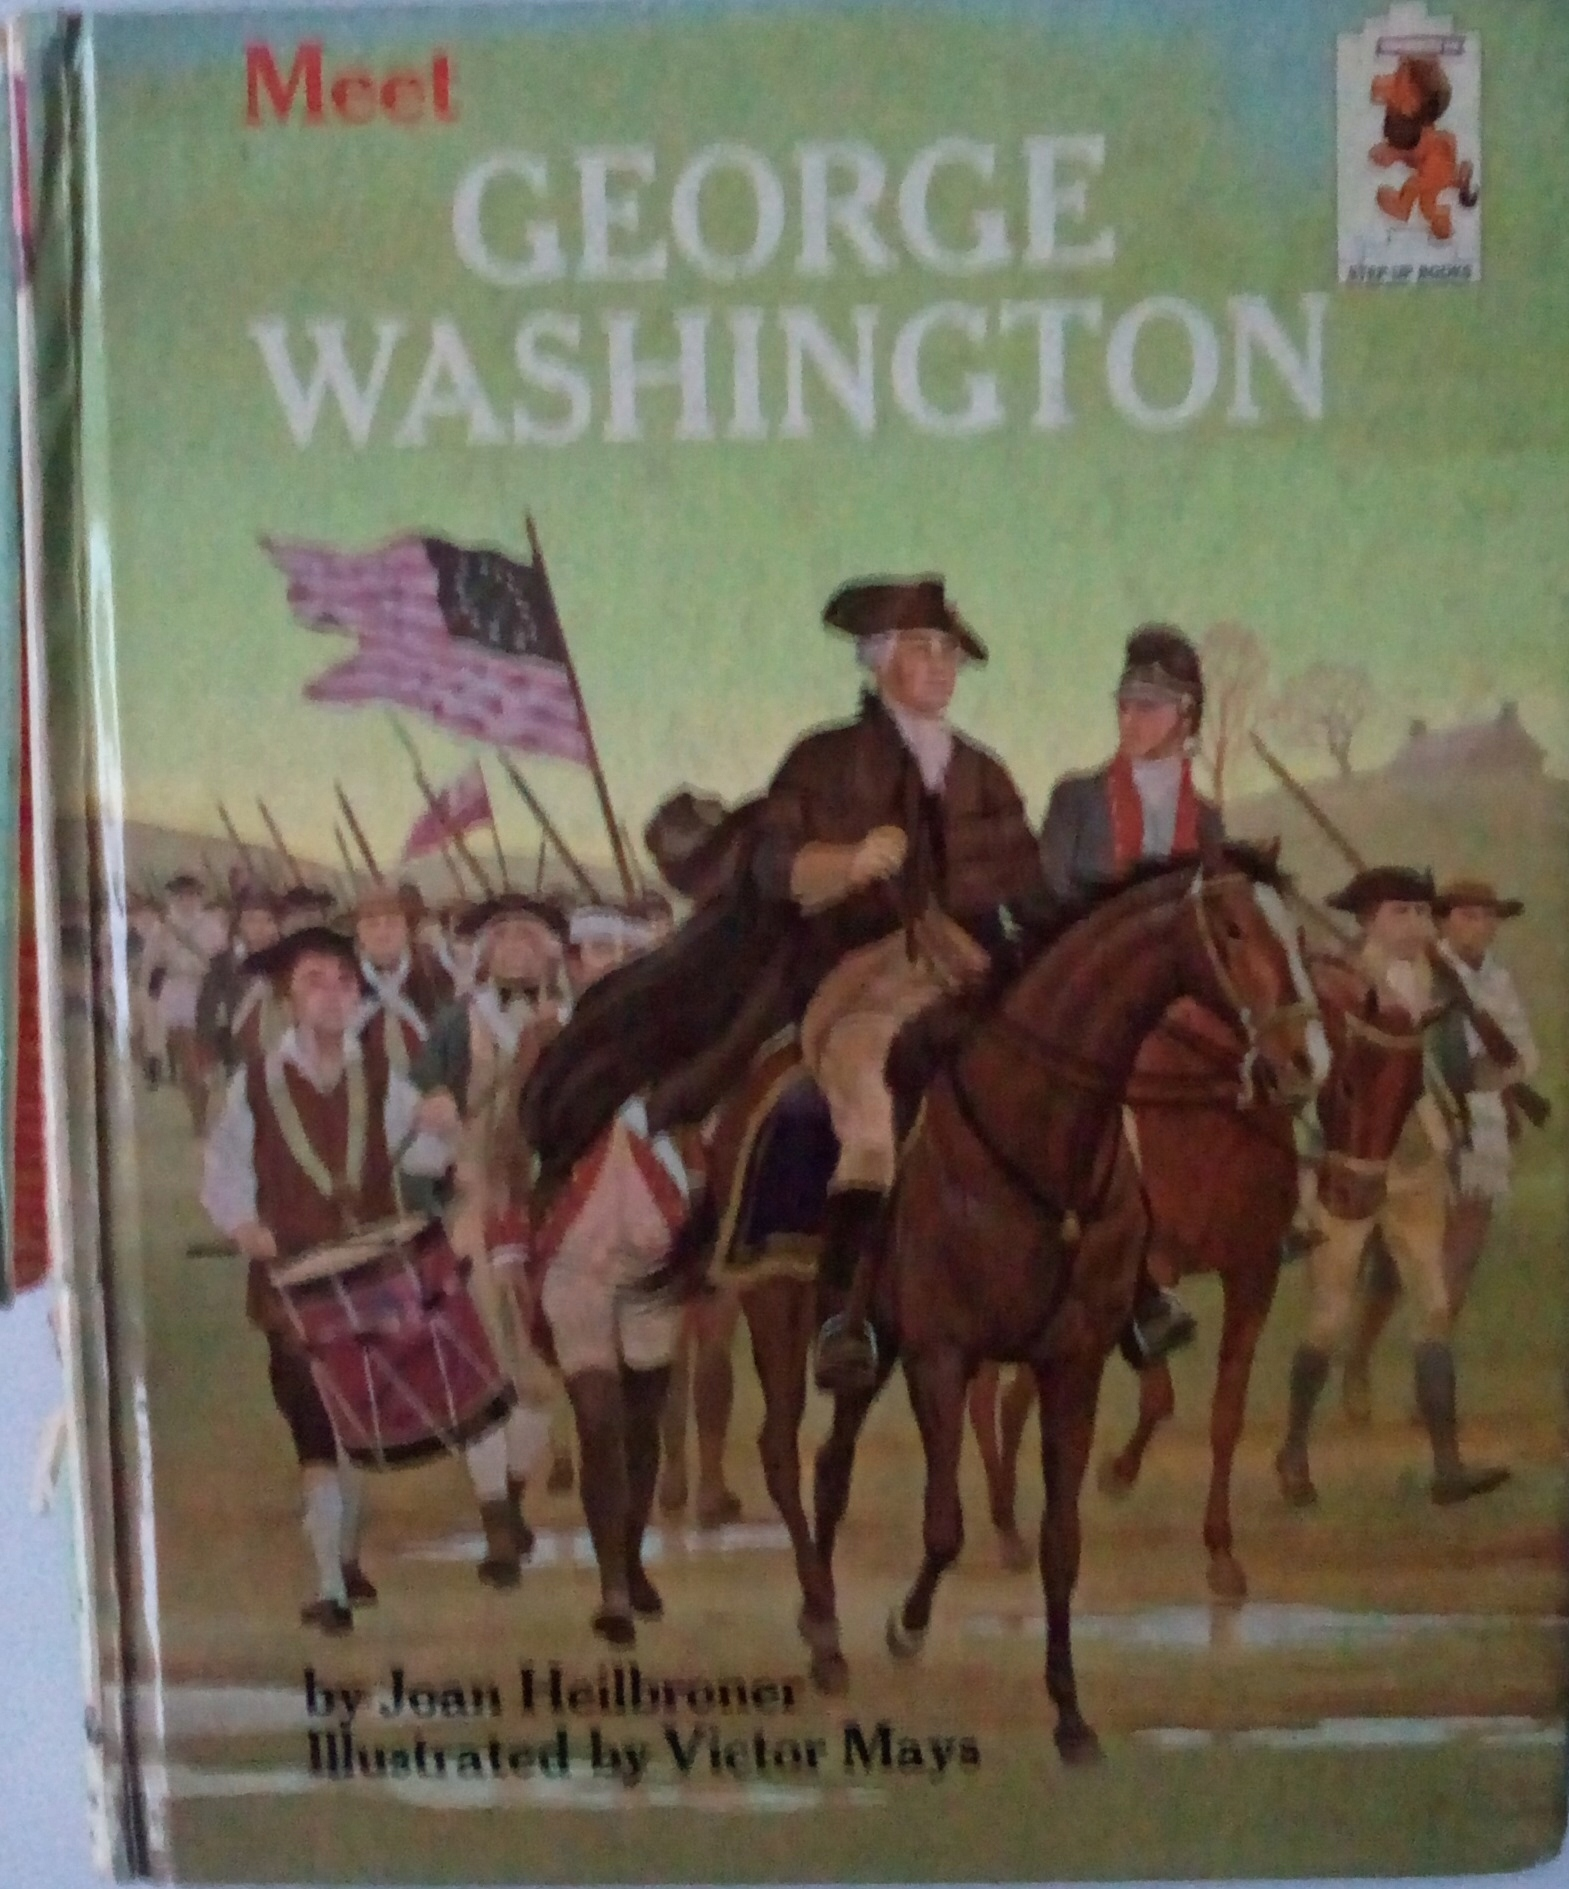 MEET GEORGE WASHINGTON JOAN HEILBRONER 1964